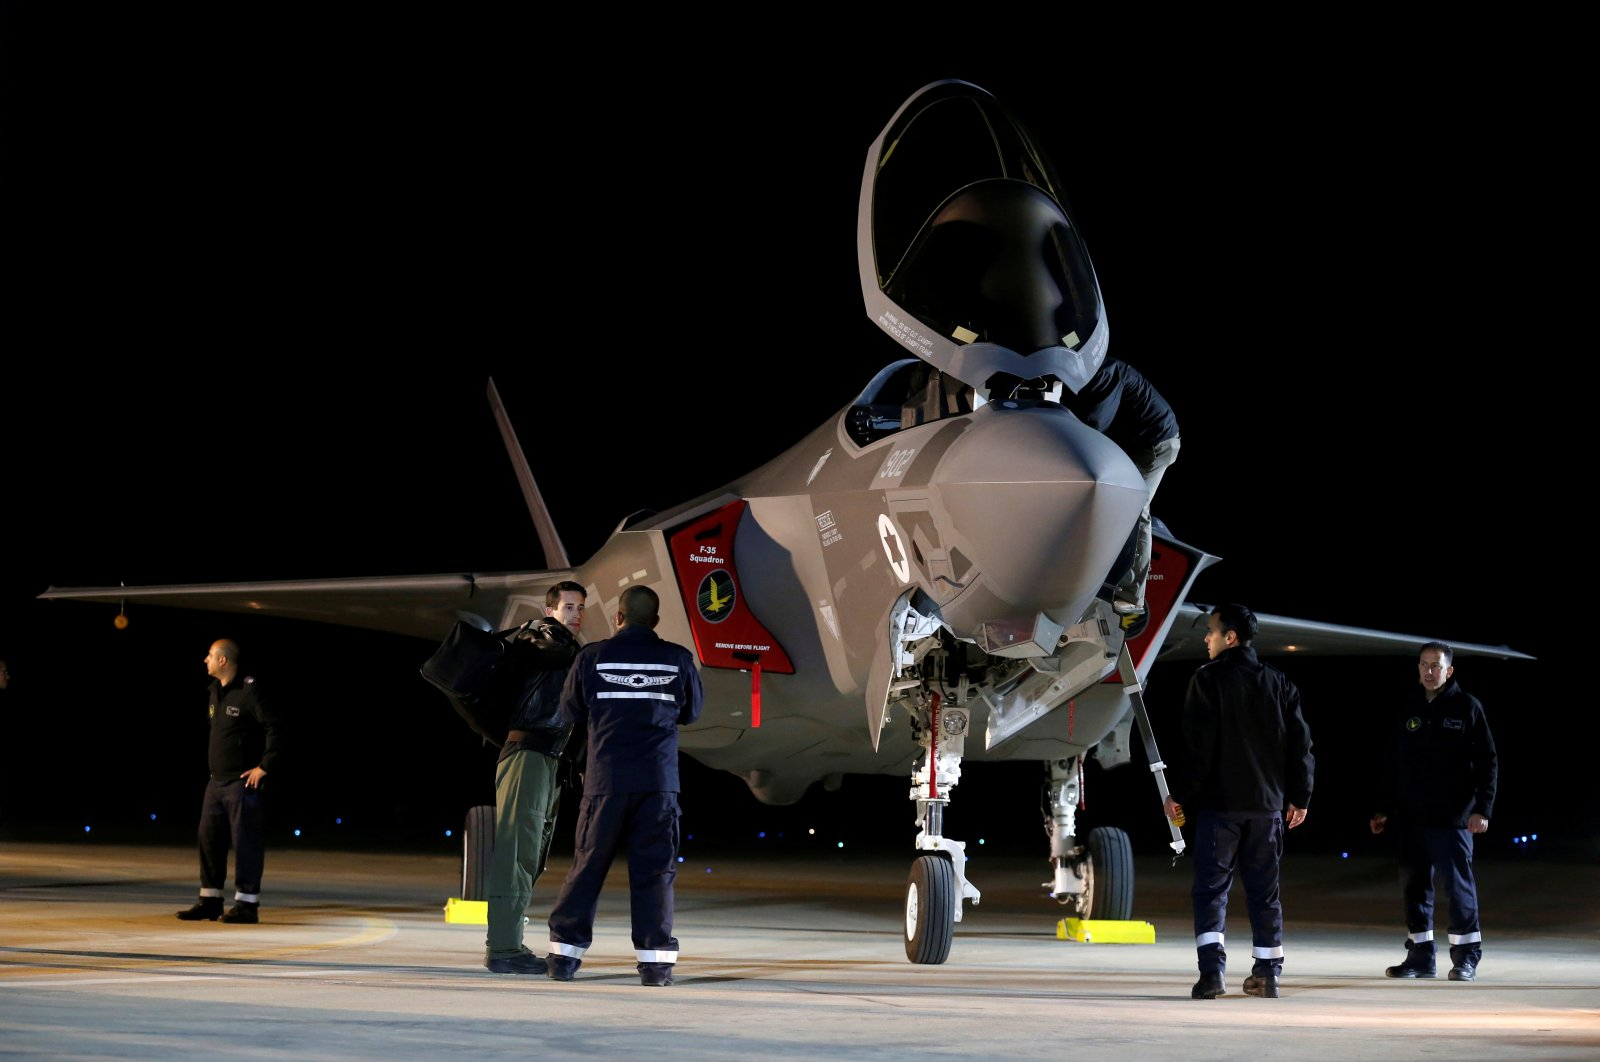 Israeli soldiers walk near an F-35 fighter jet, purchased by the Israeli Air Force, after it landed at Nevatim Air Base, in Nevatim, southern Israel, Dec. 12, 2016. (Reuters Photo)